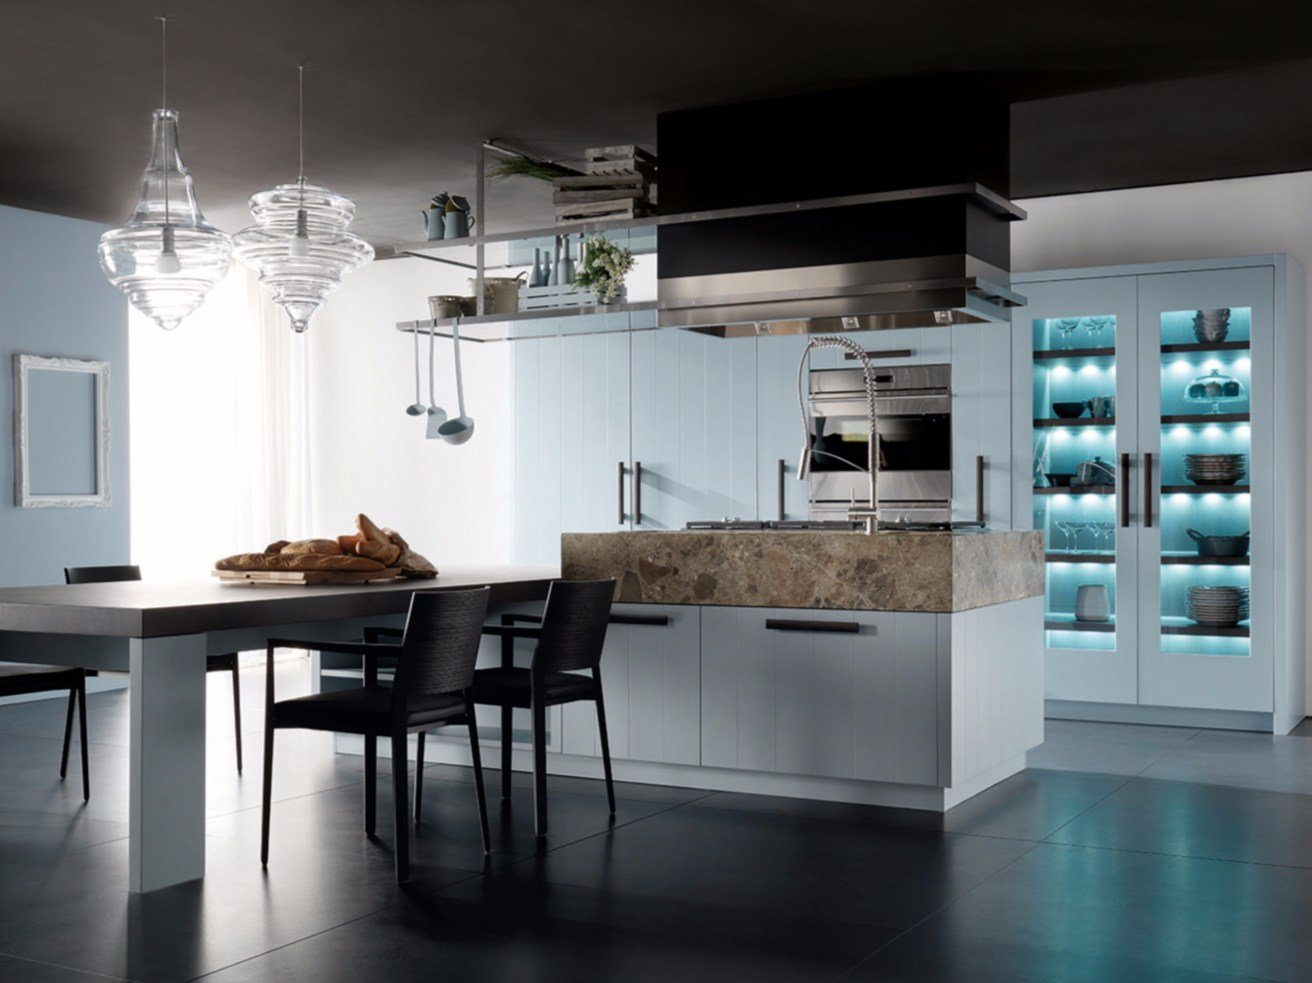 Lacquered kitchen with island nant a cielo by toncelli cucine - Cucine toncelli ...